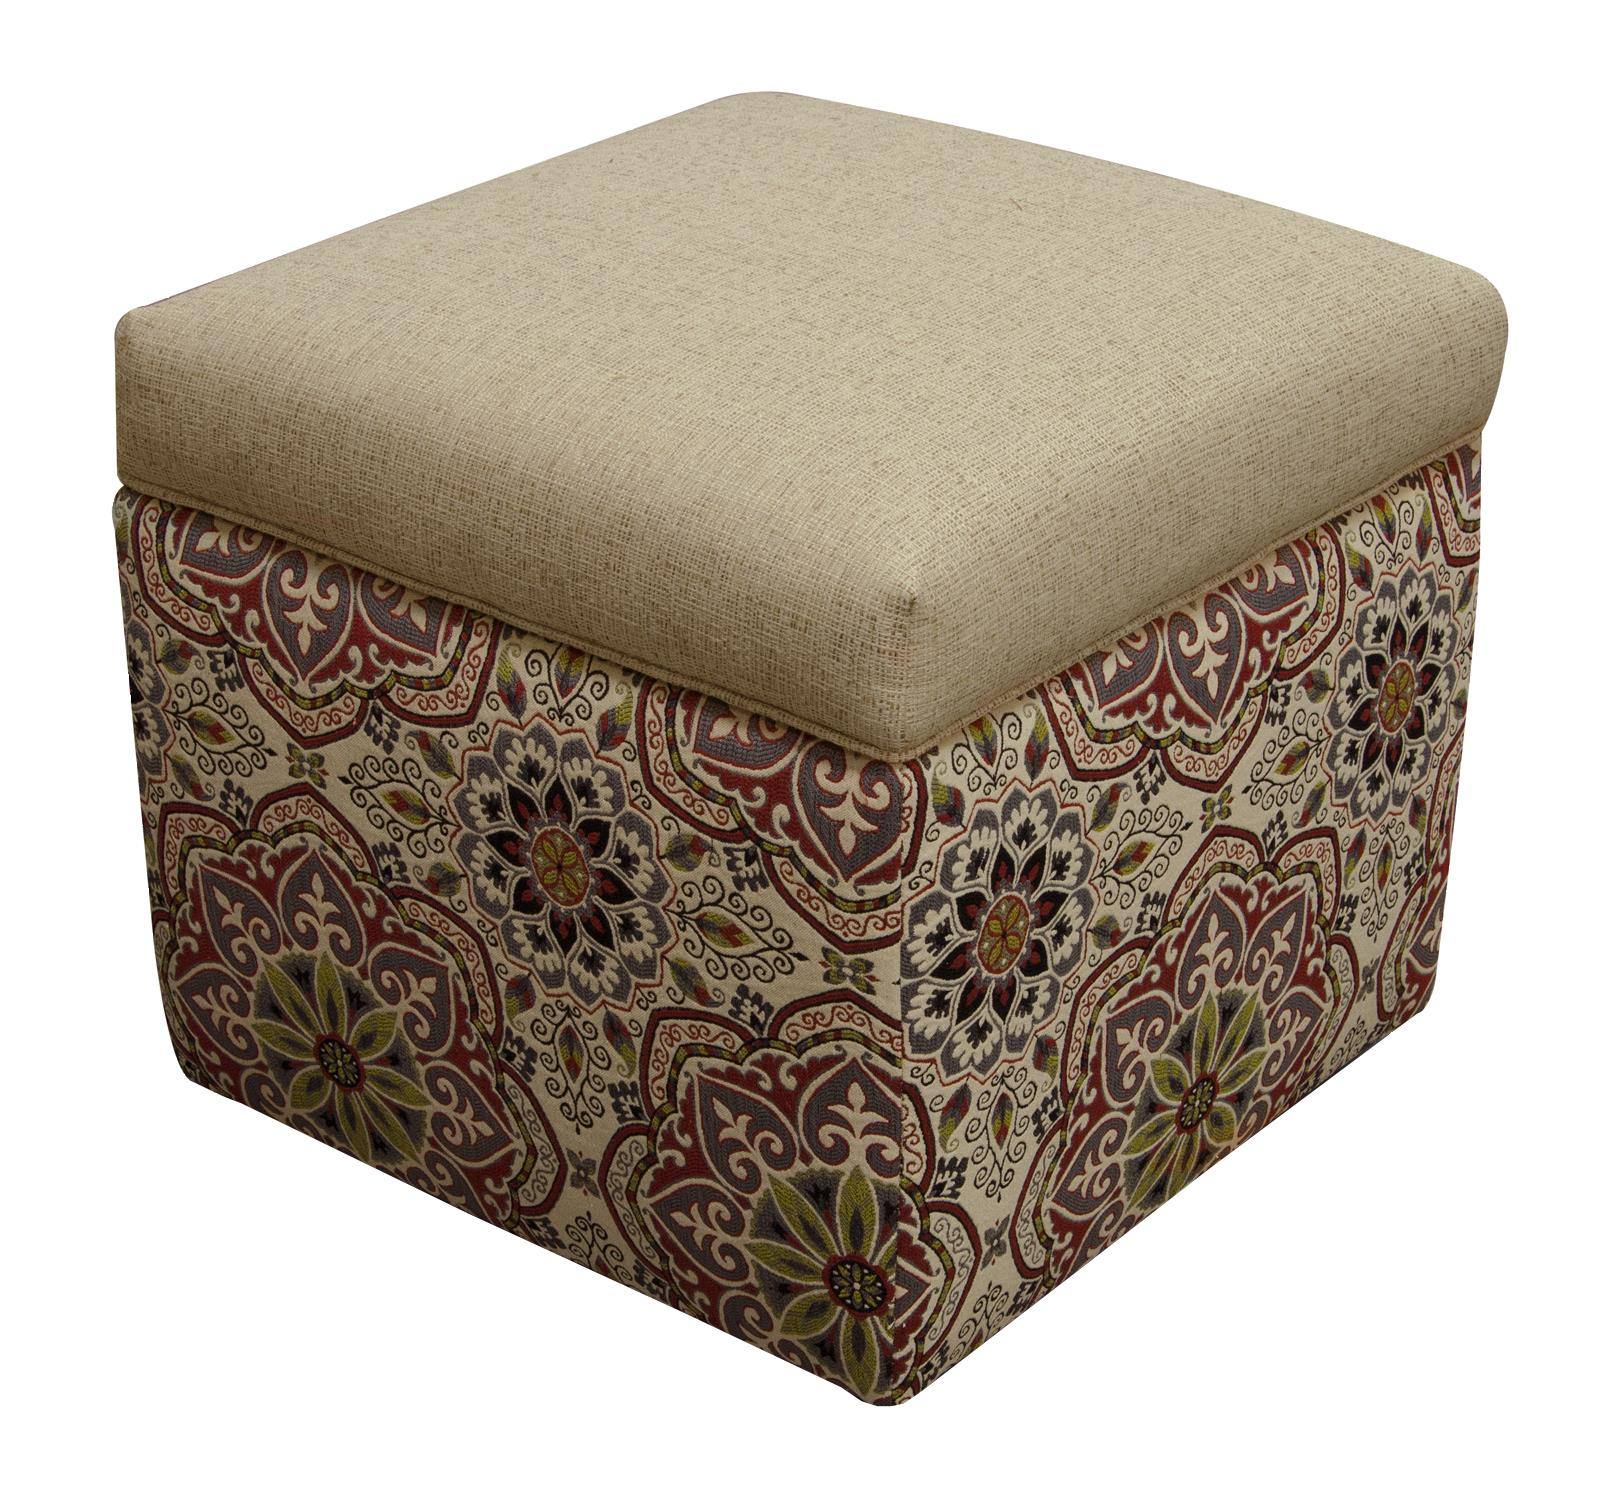 Parson Storage Ottoman by England at Godby Home Furnishings